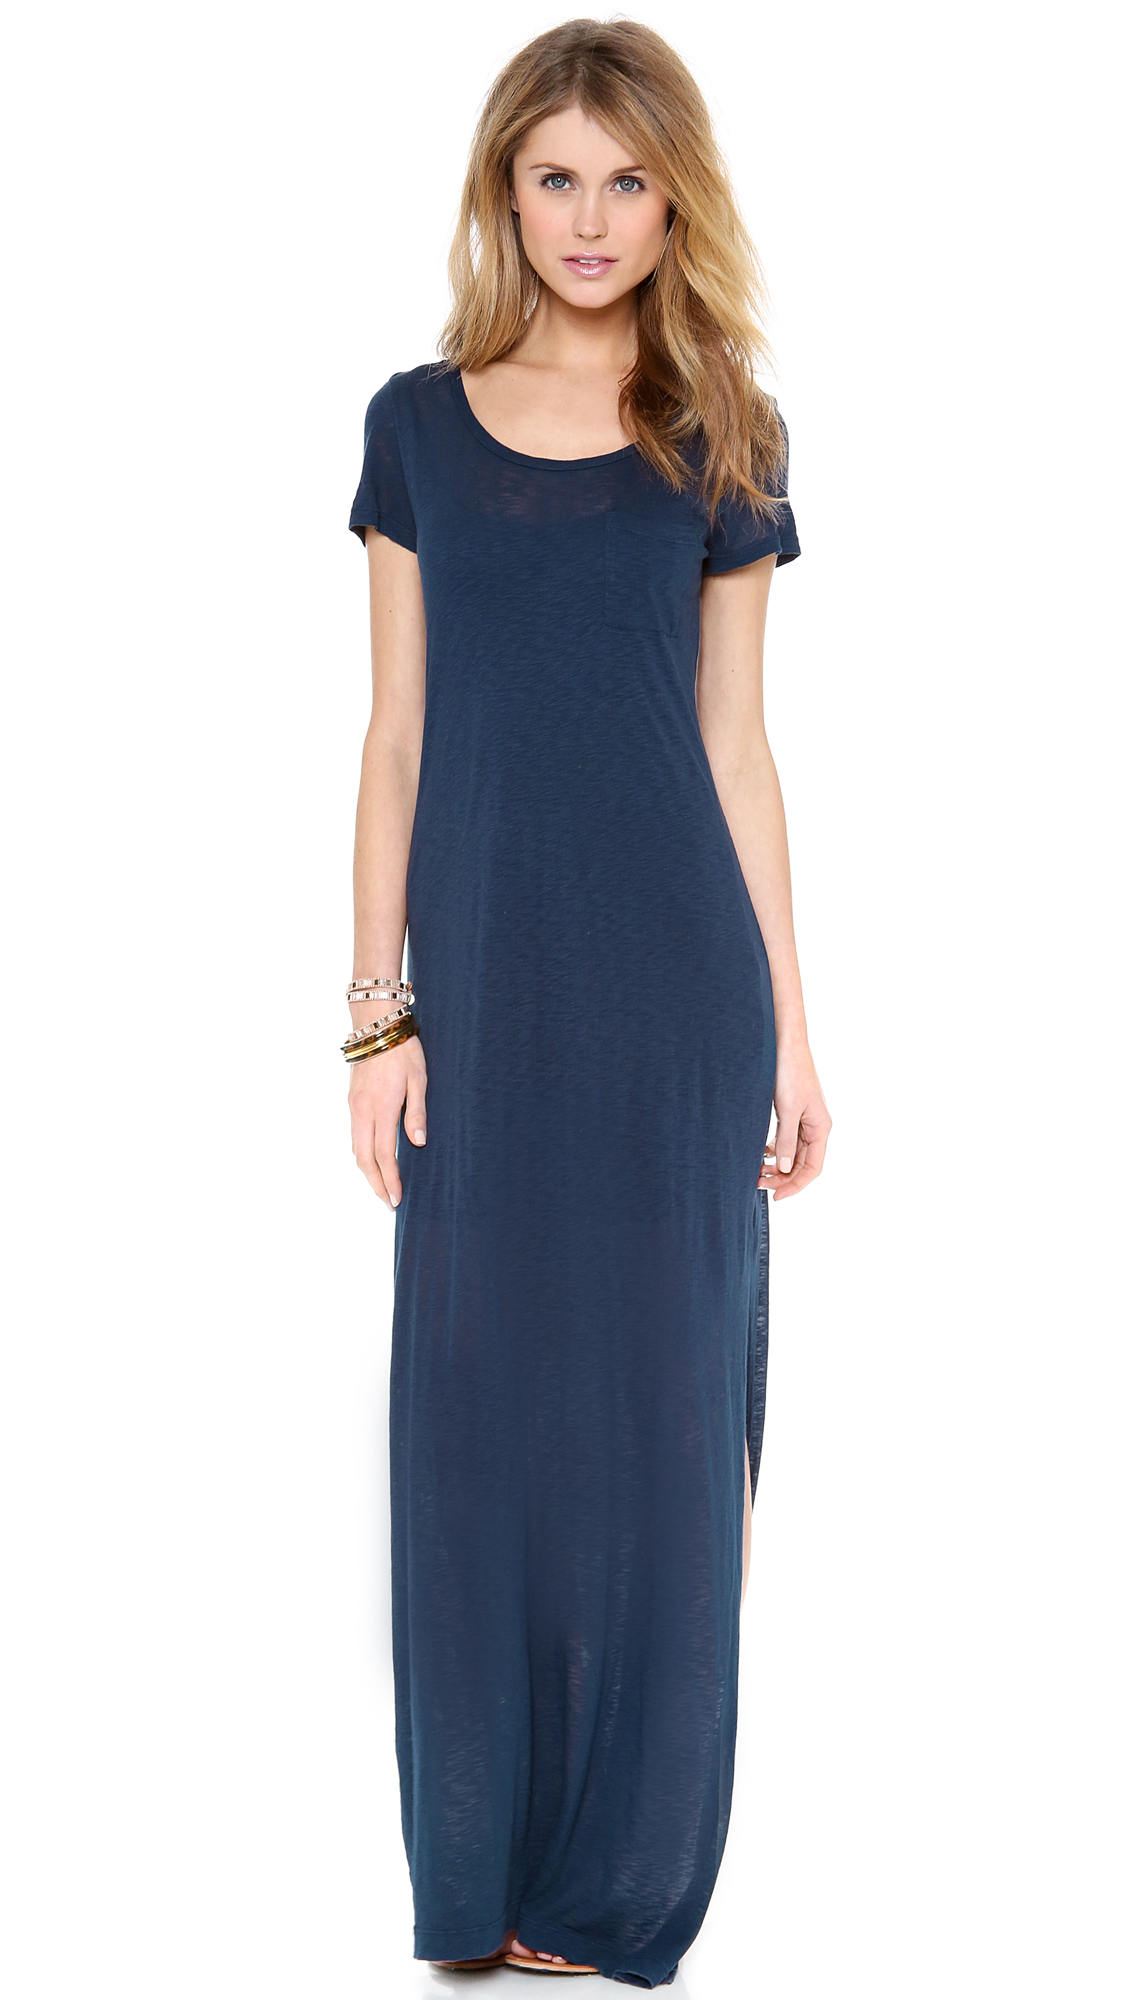 Splendid T-Shirt Maxi Dress with Slit | 15% off first app purchase ...